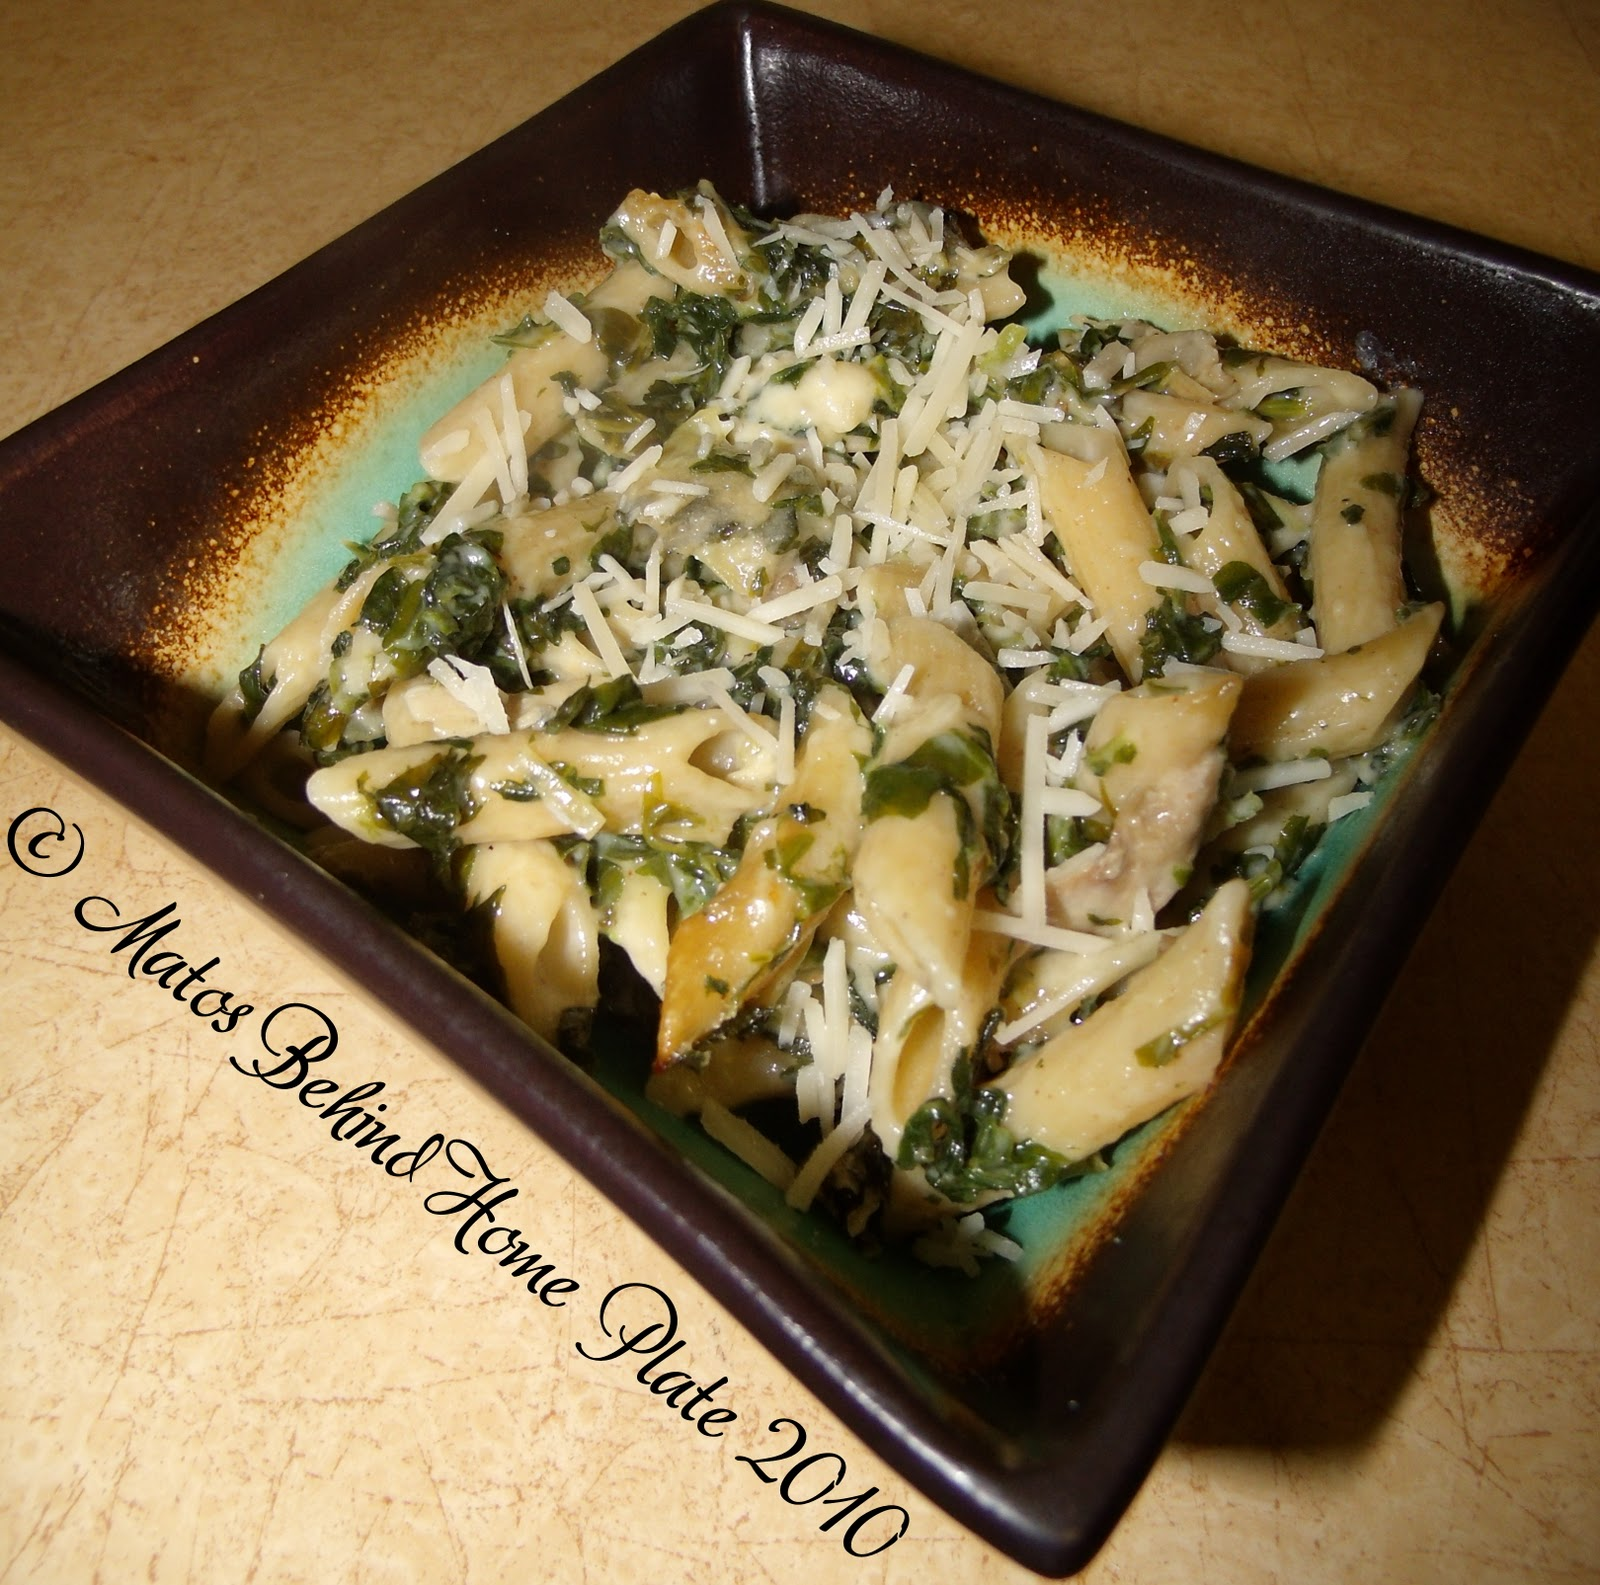 Matos Behind Home Plate: Spinach and Artichoke Baked Whole Grain Pasta